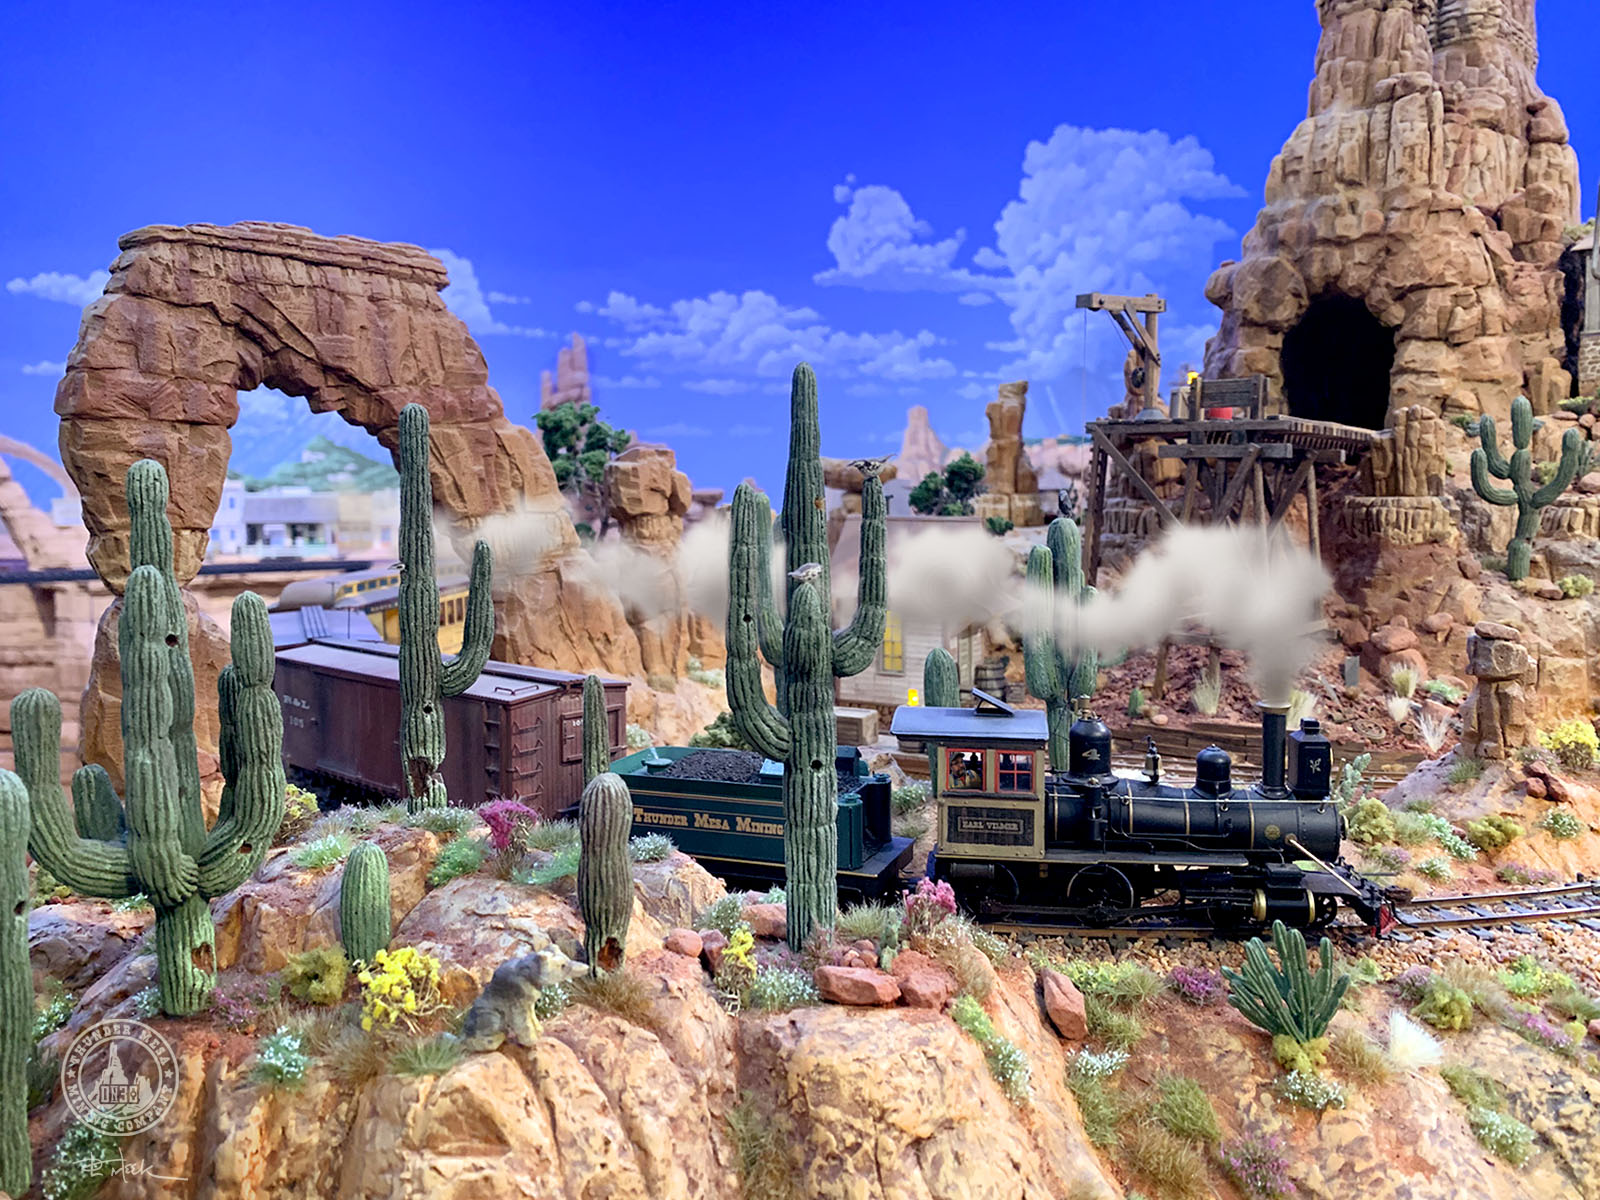 Thunder Mesa model railroad